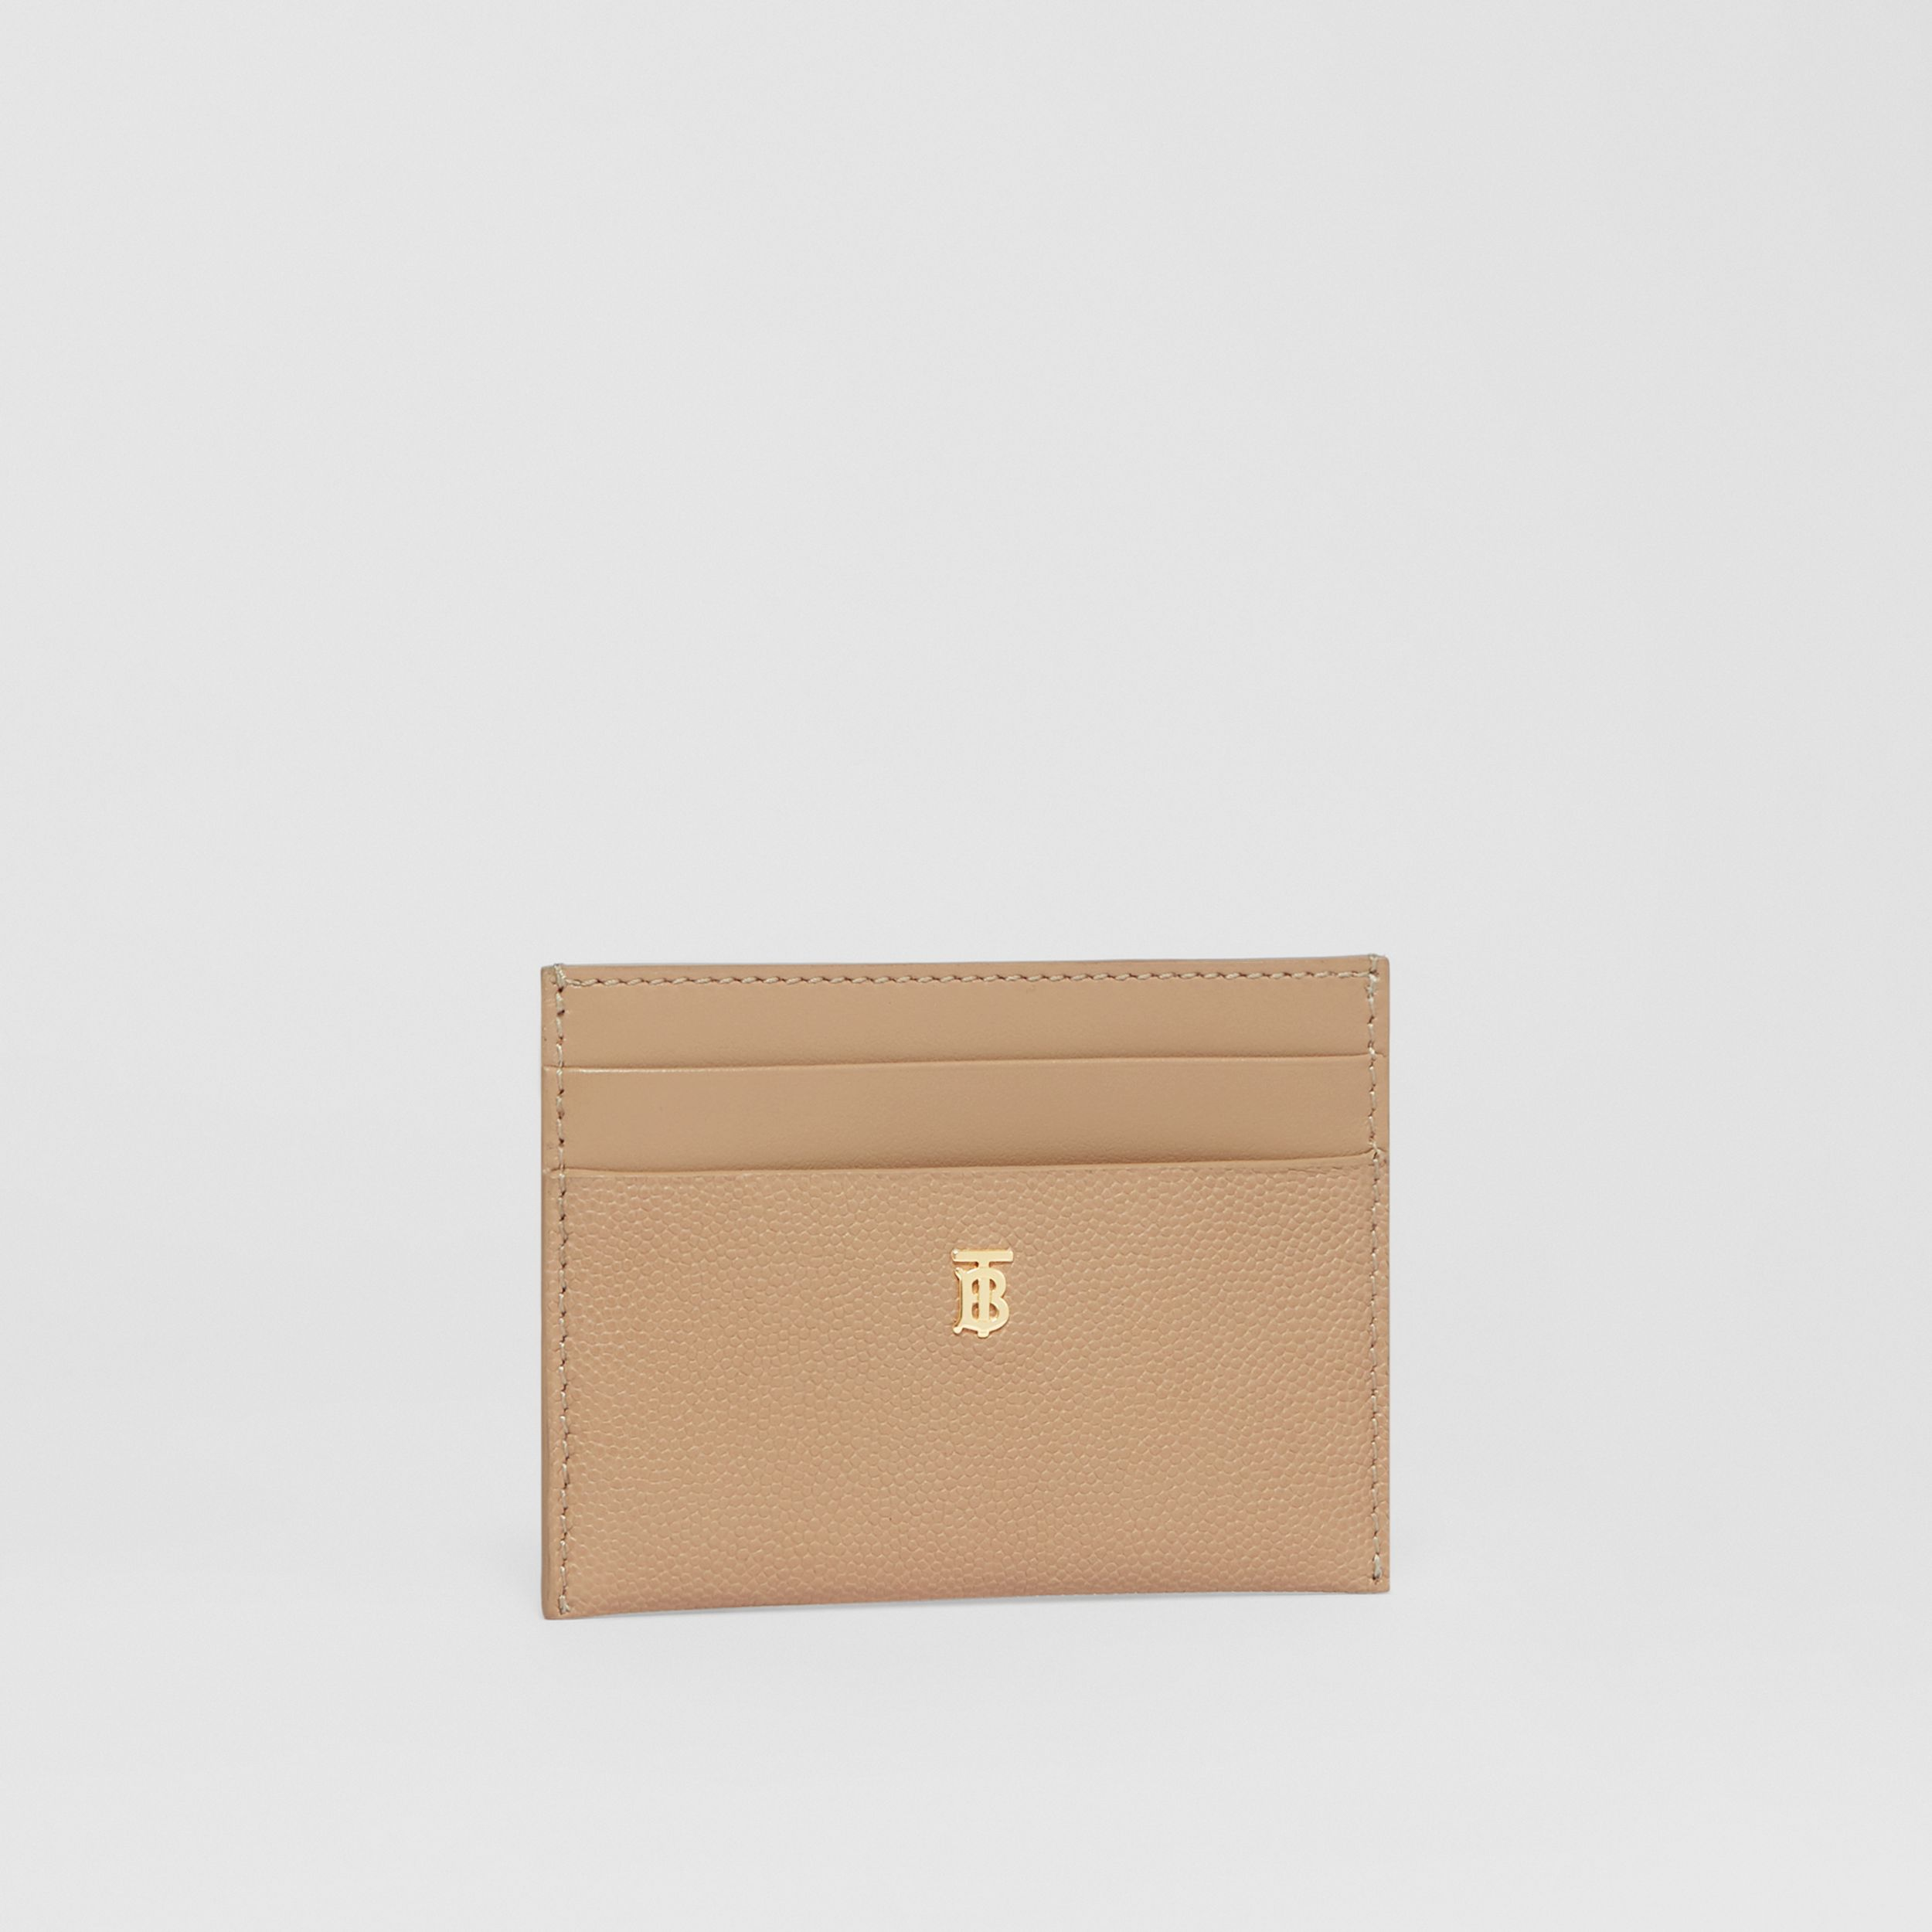 Monogram Motif Leather Card Case in Archive Beige - Women | Burberry Australia - 3